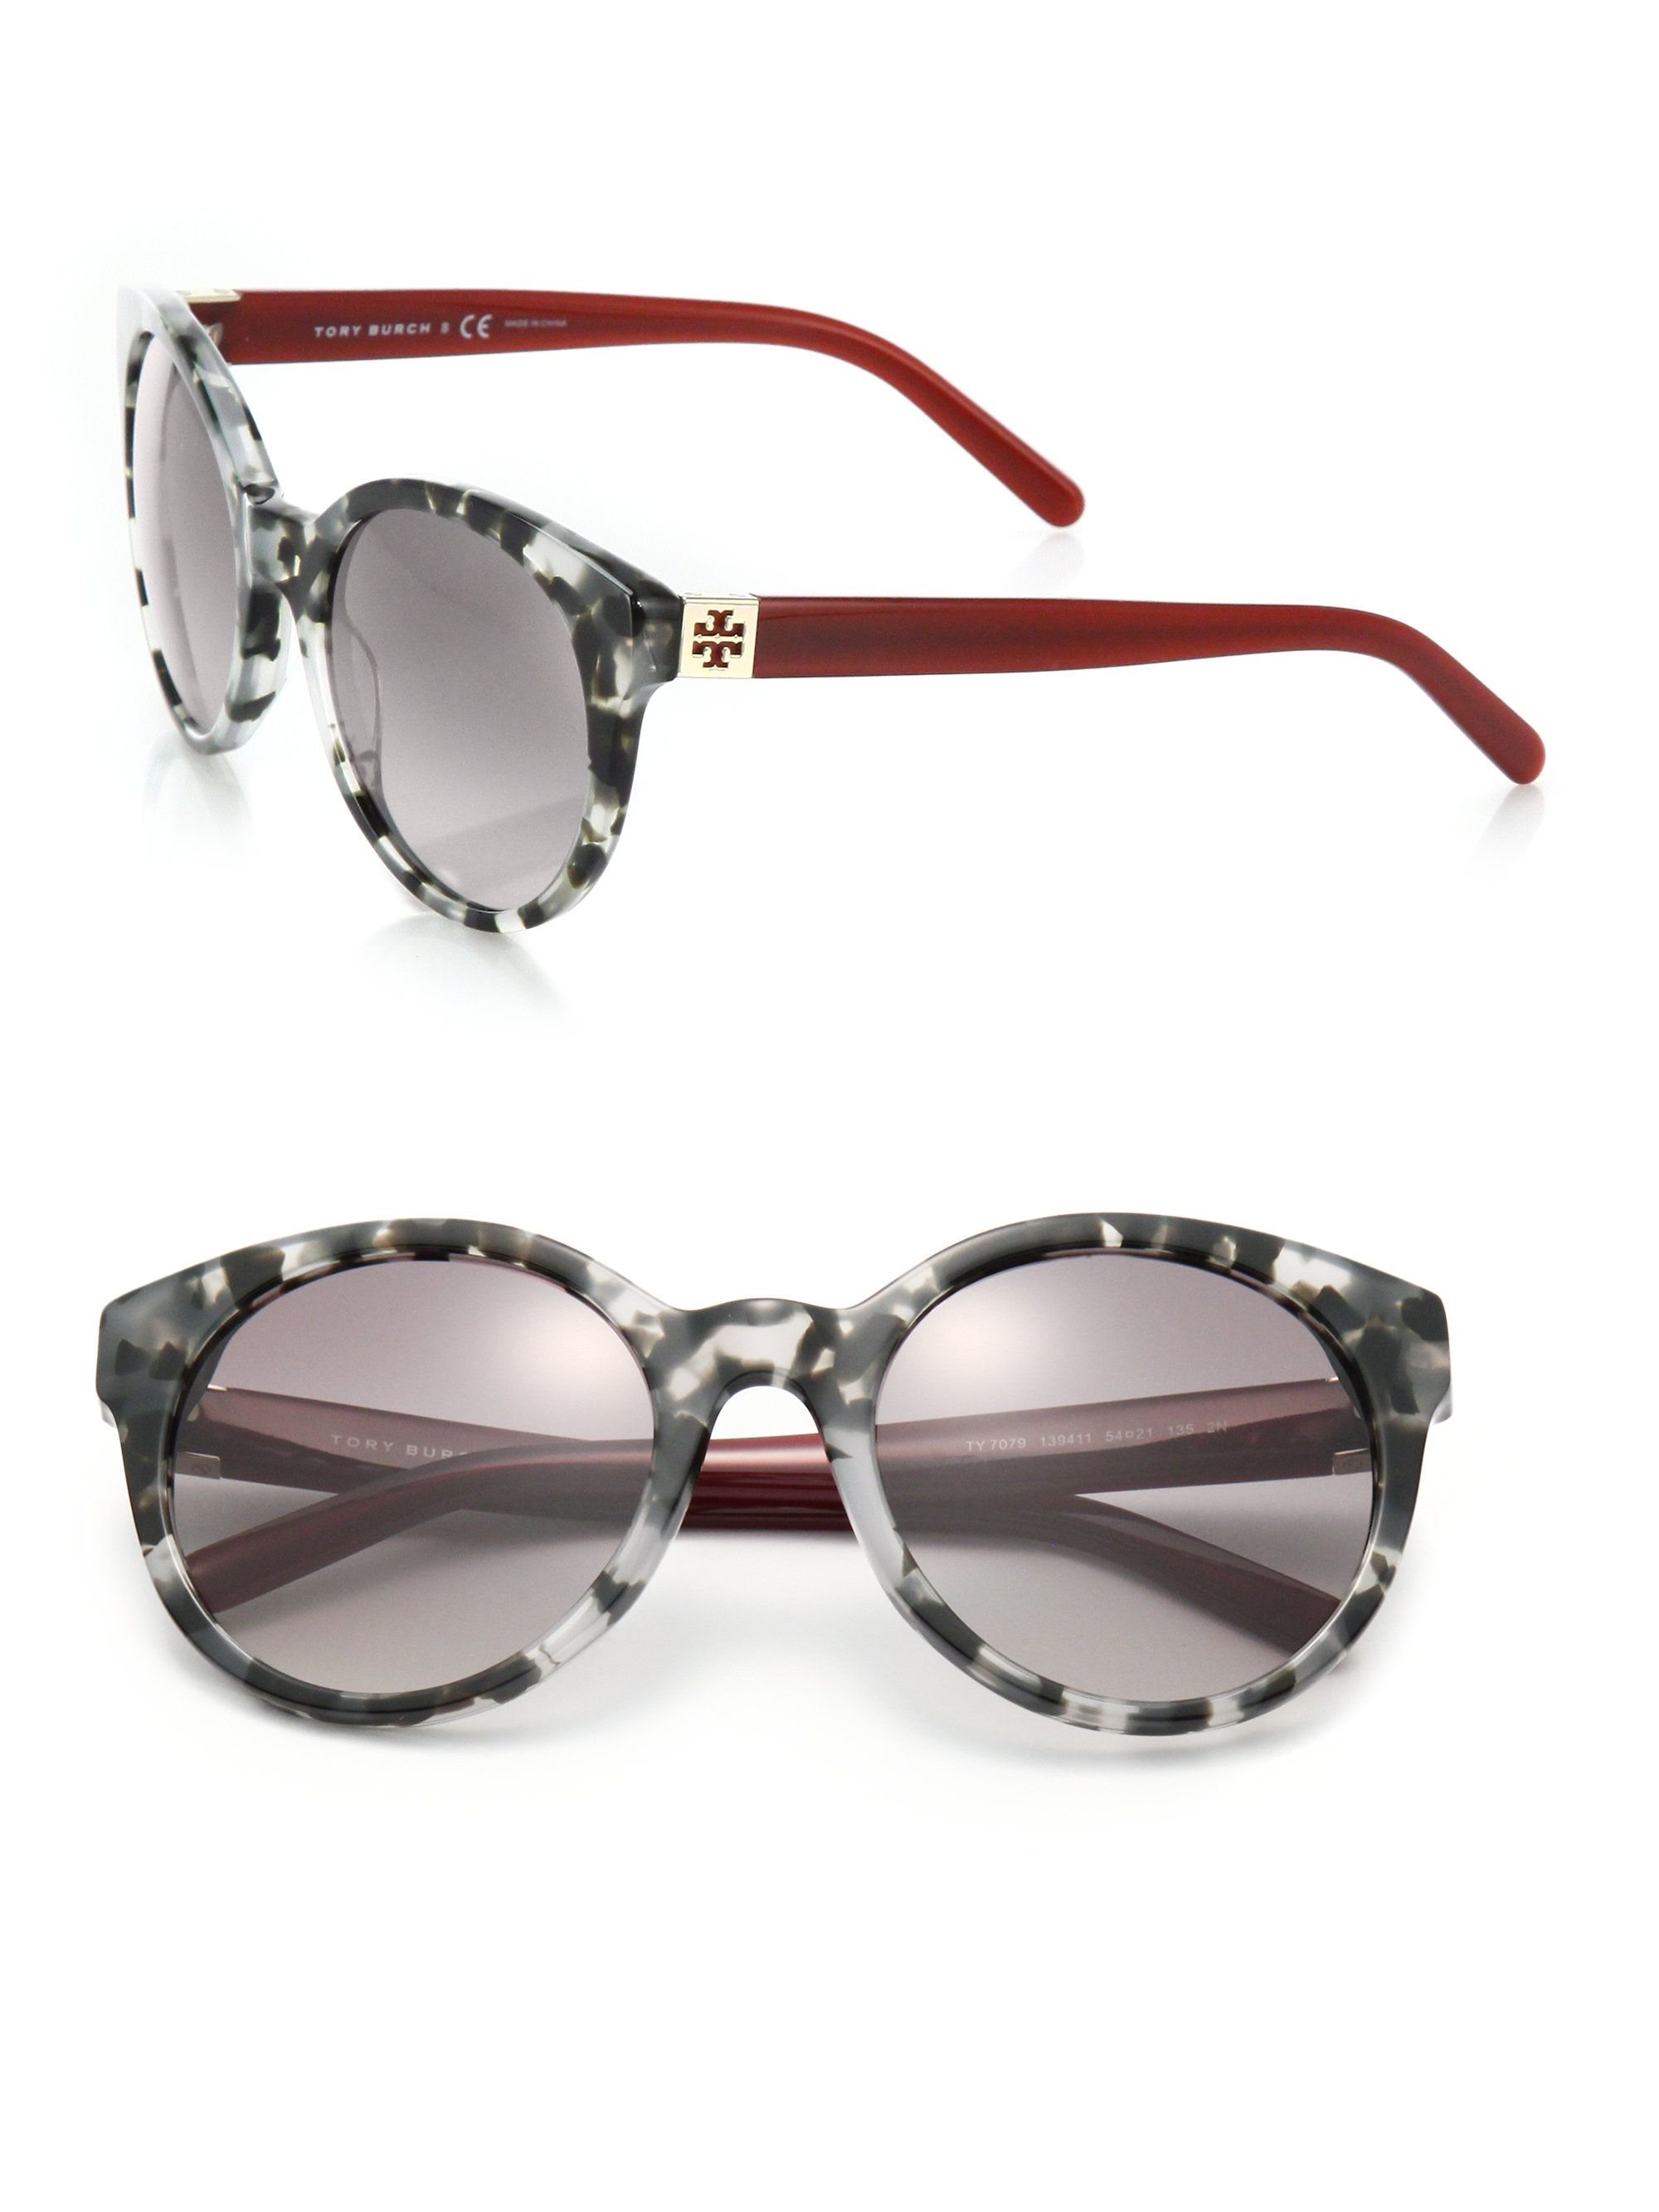 c375e5085d06 Tory Burch Vintage 54mm Round Sunglasses in Gray - Lyst